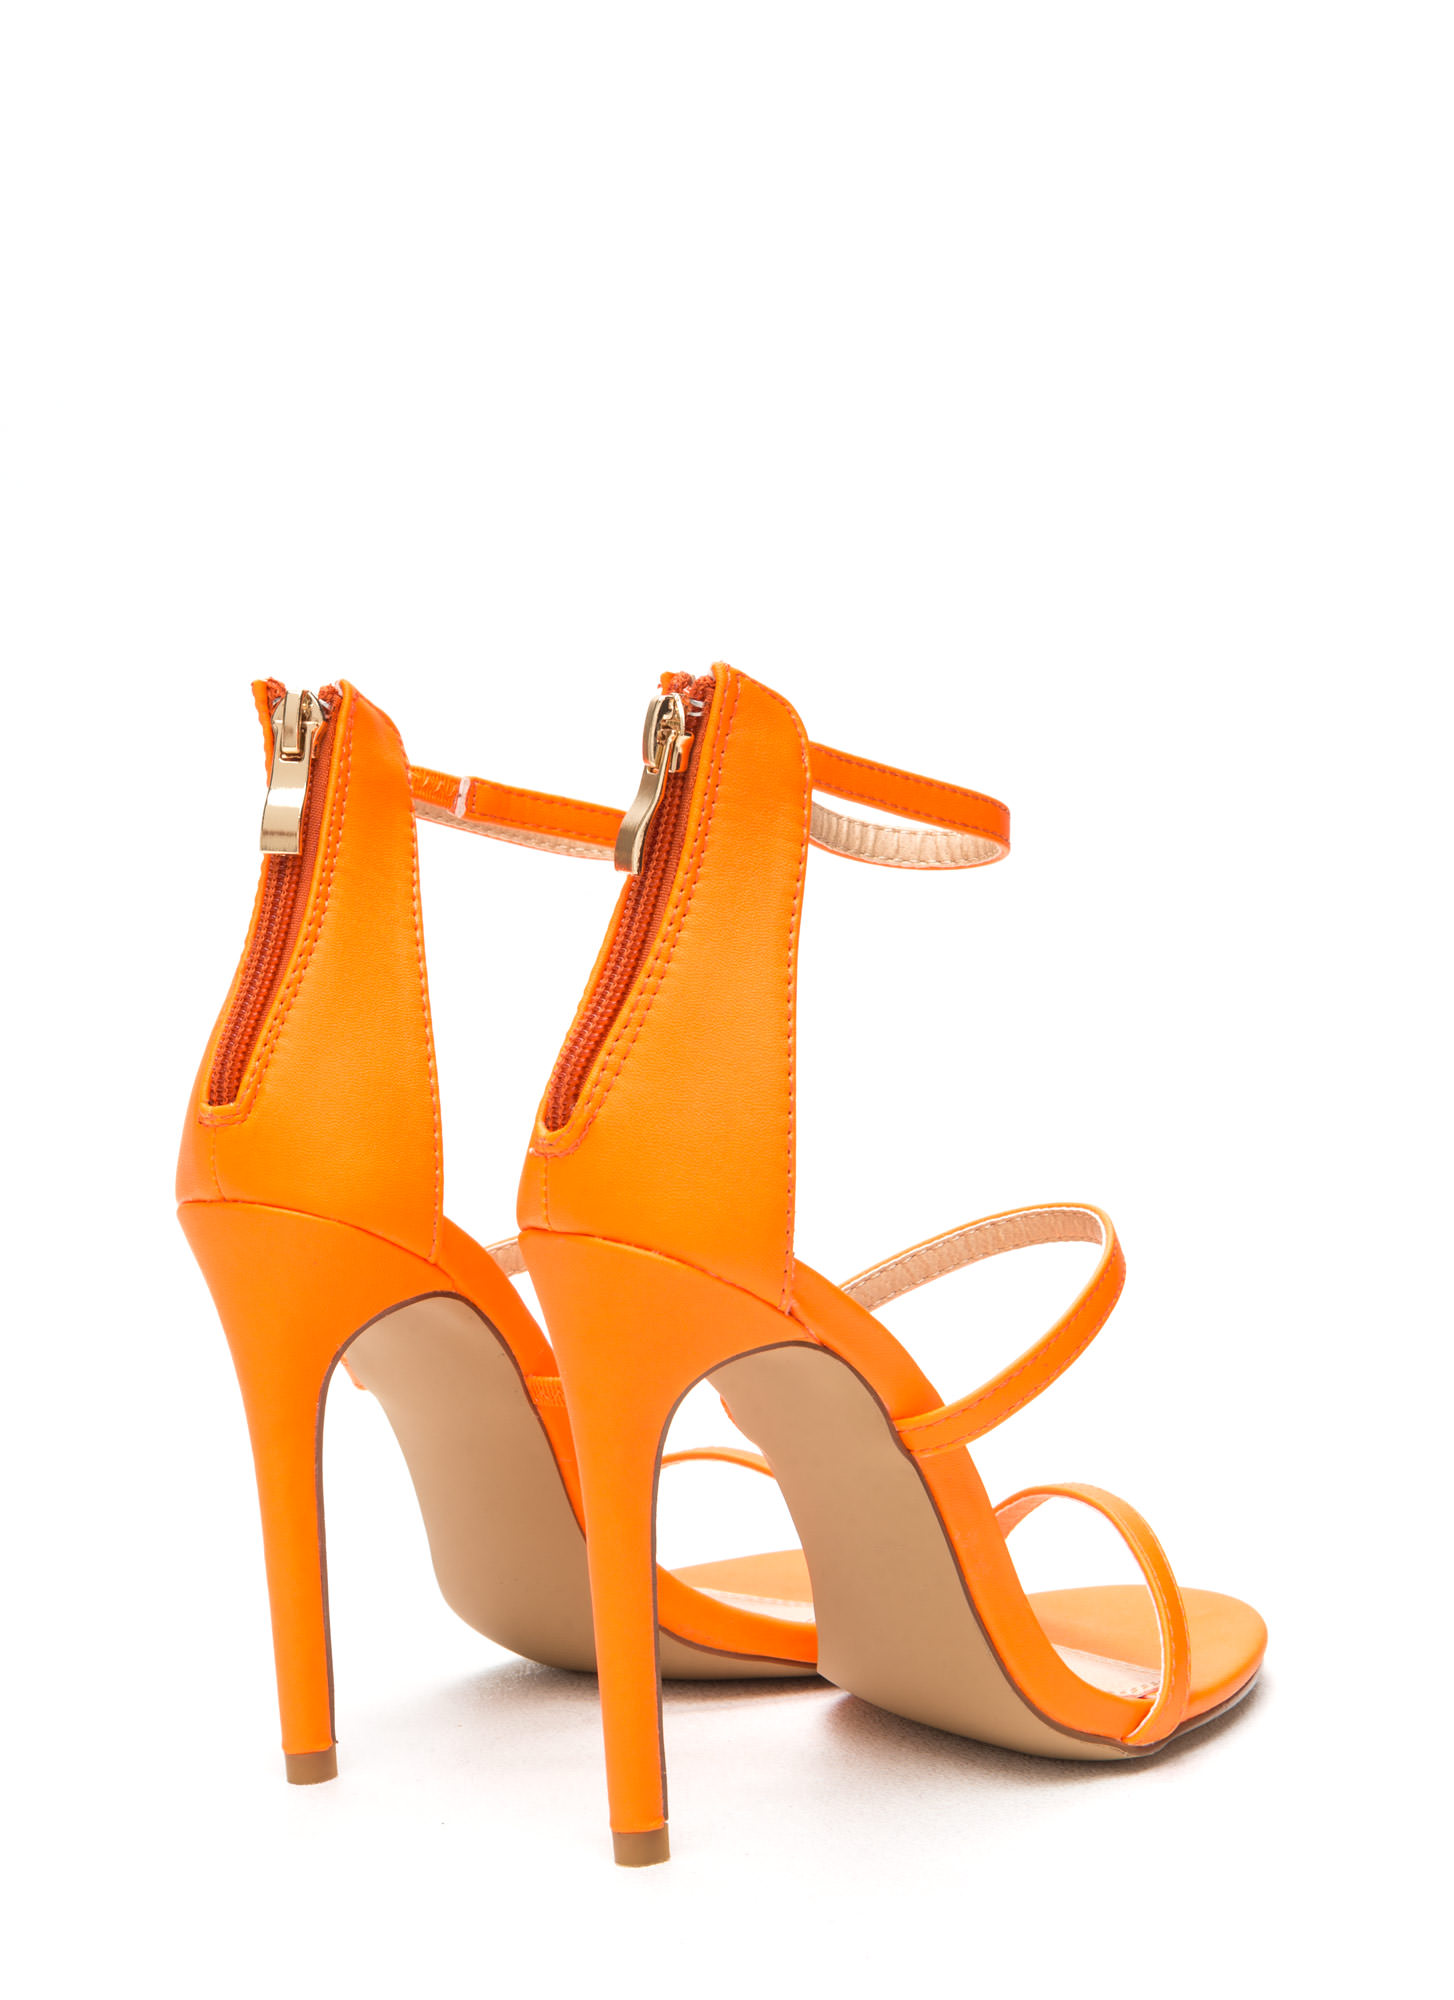 Strappy Life Single-Sole Heels NEONORANGE